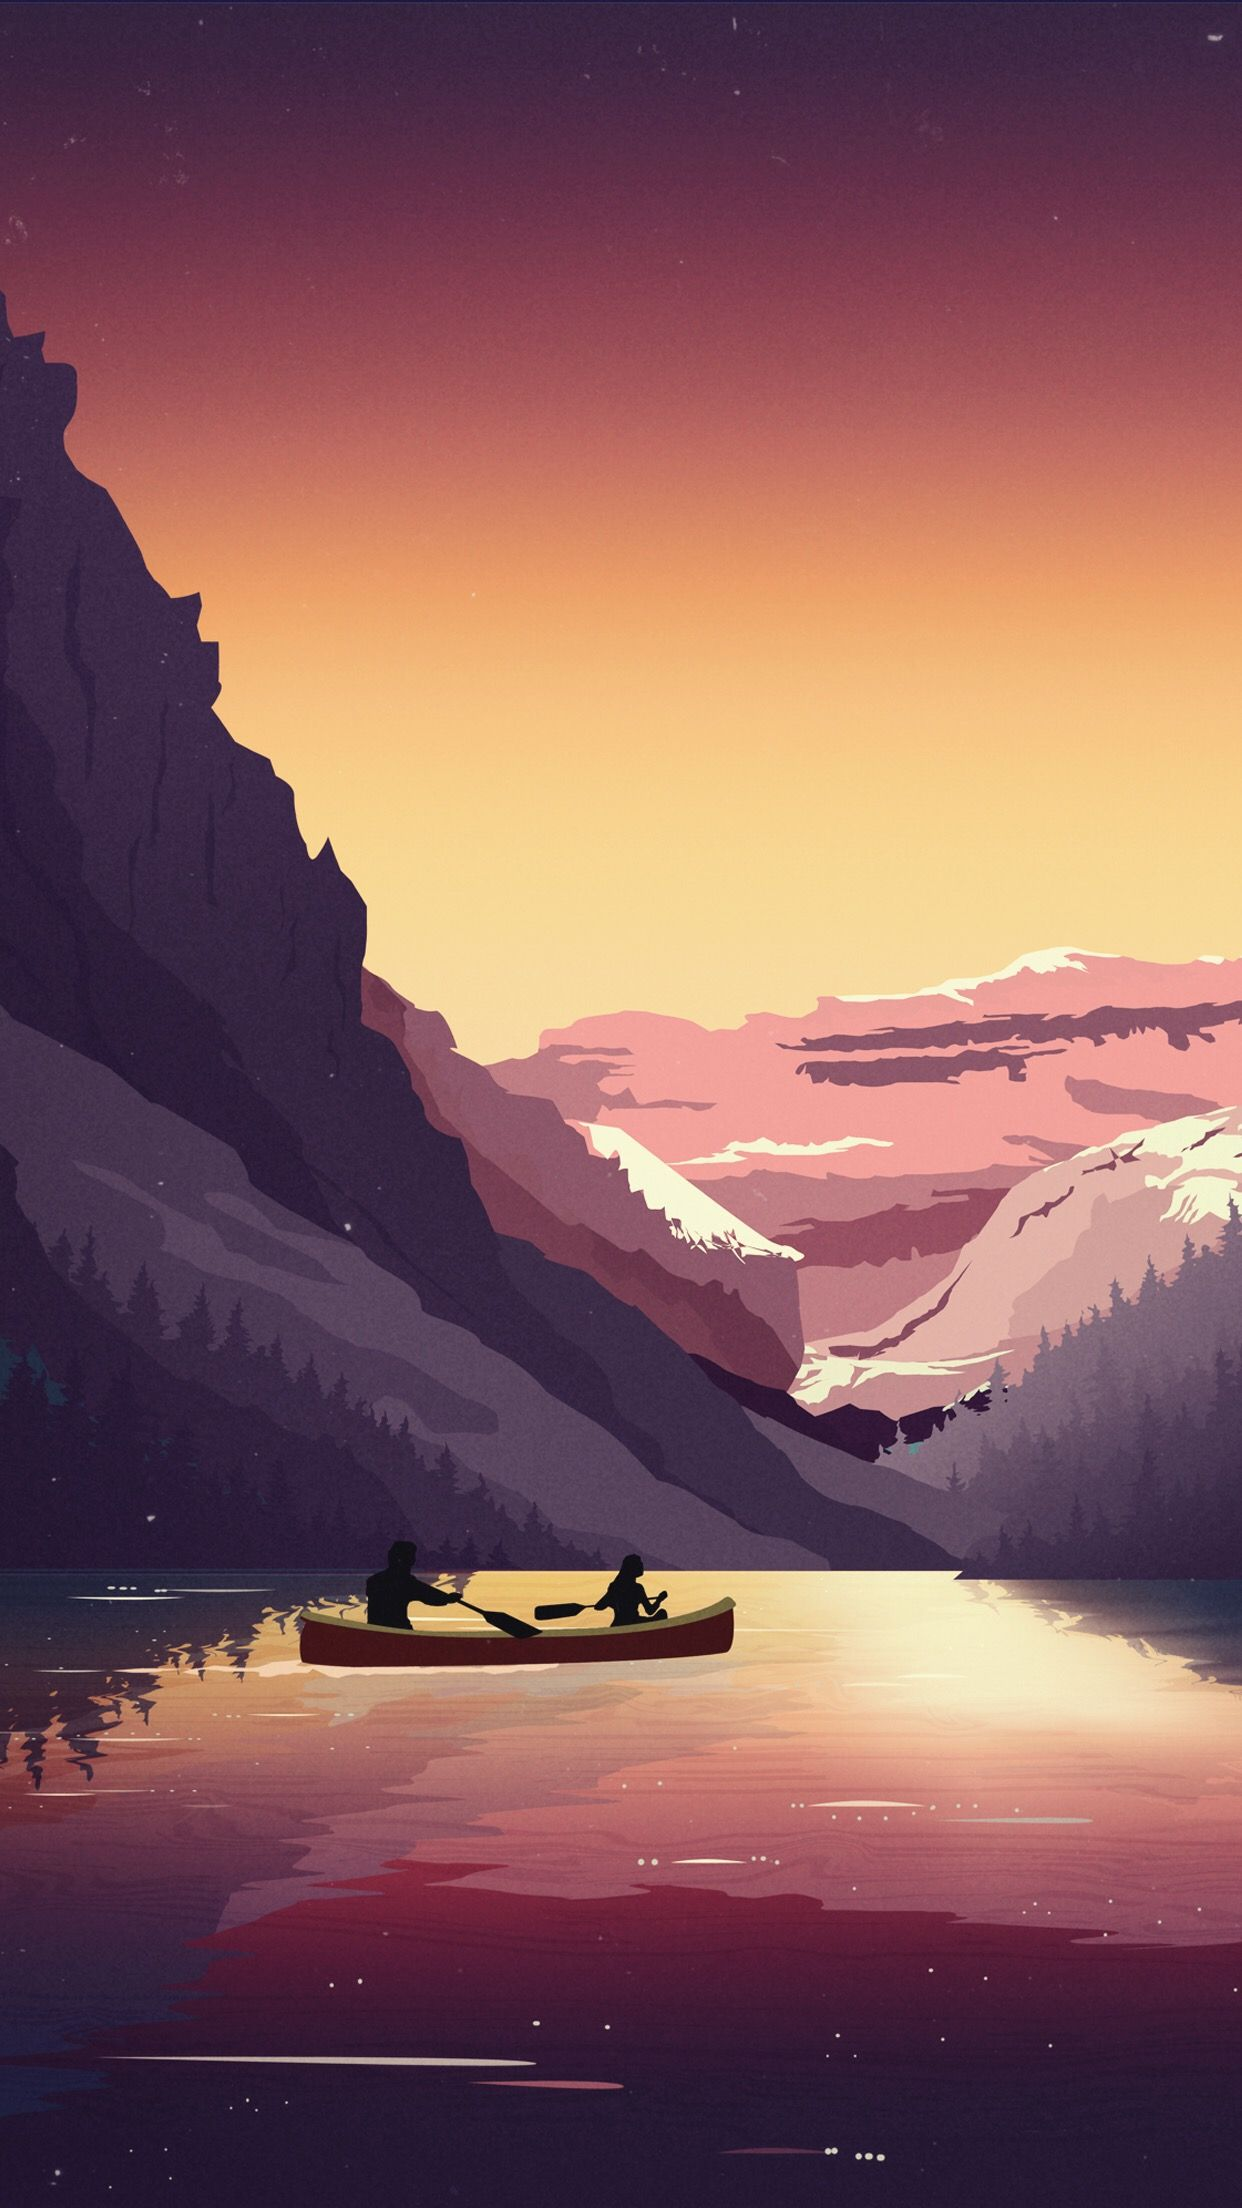 Two people on a boat on a lake surrounded by mountains and